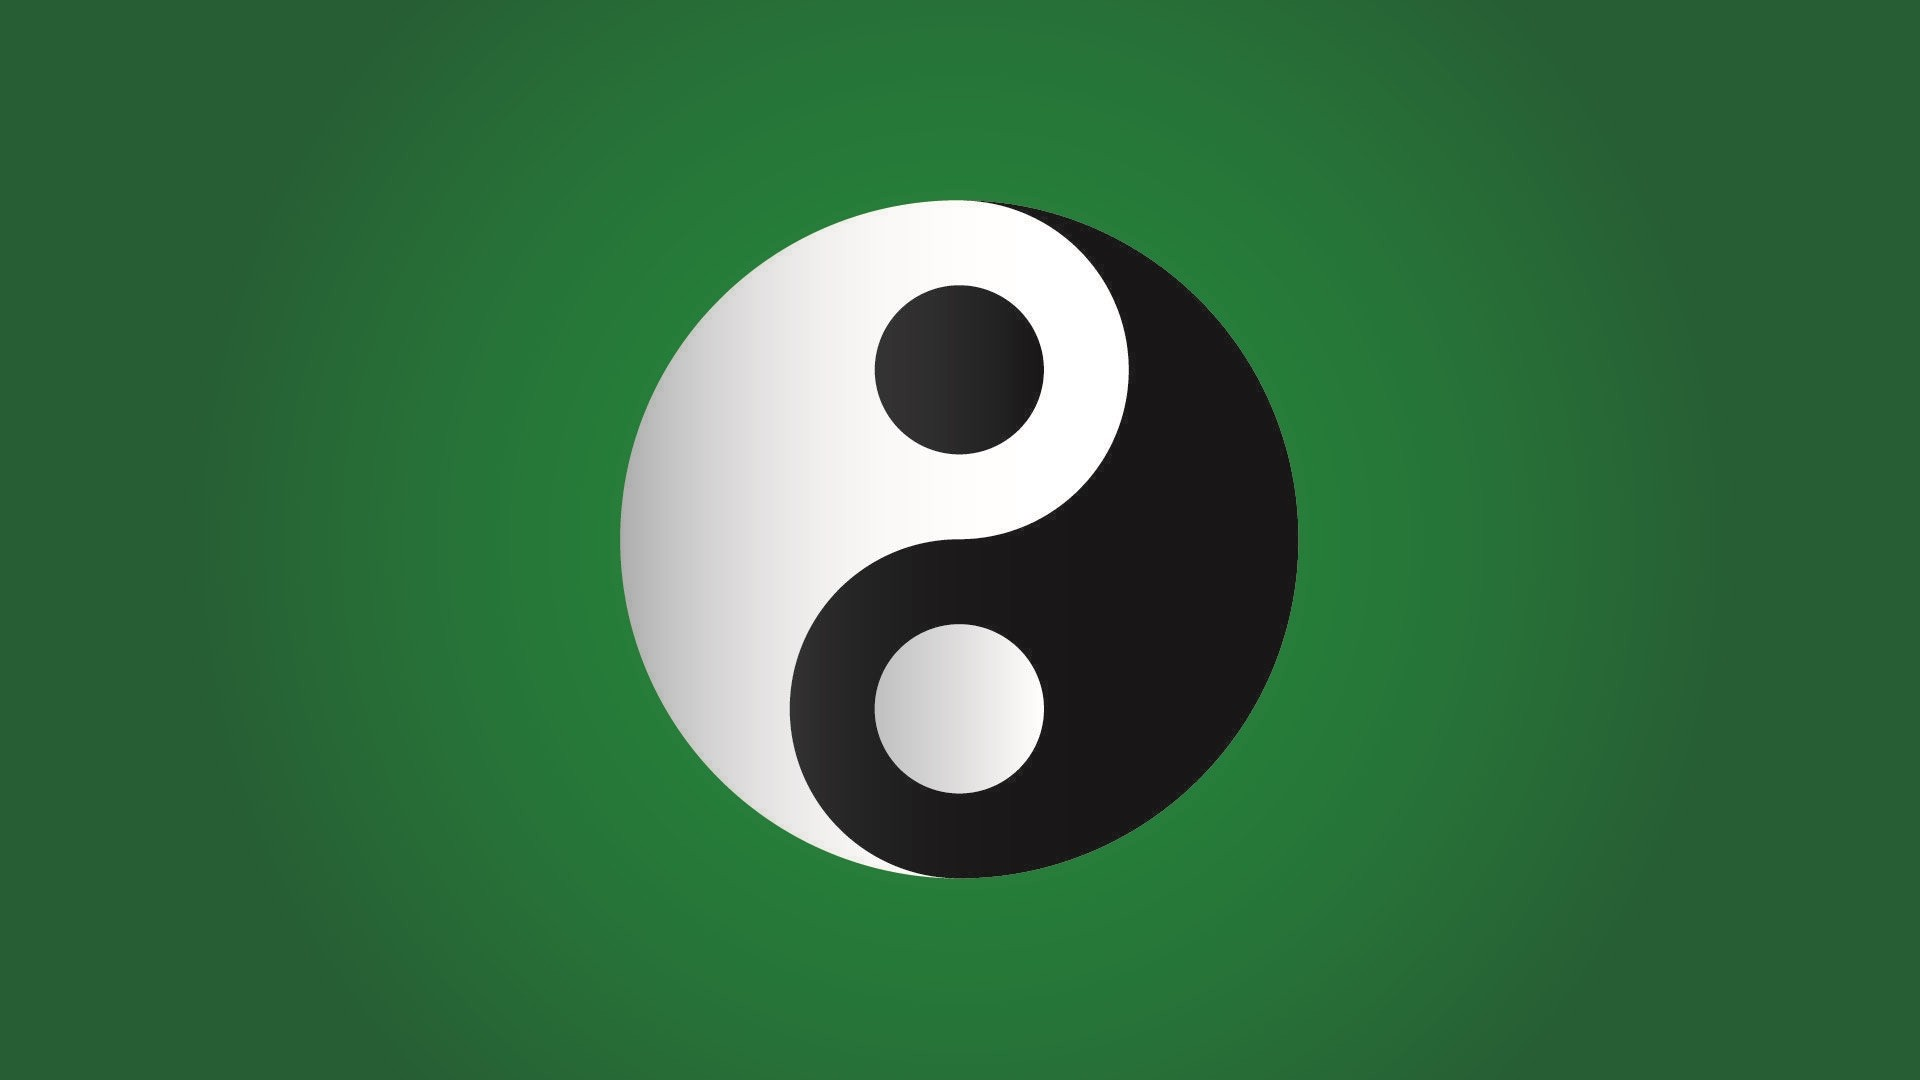 Yin Yang Background Wallpaper